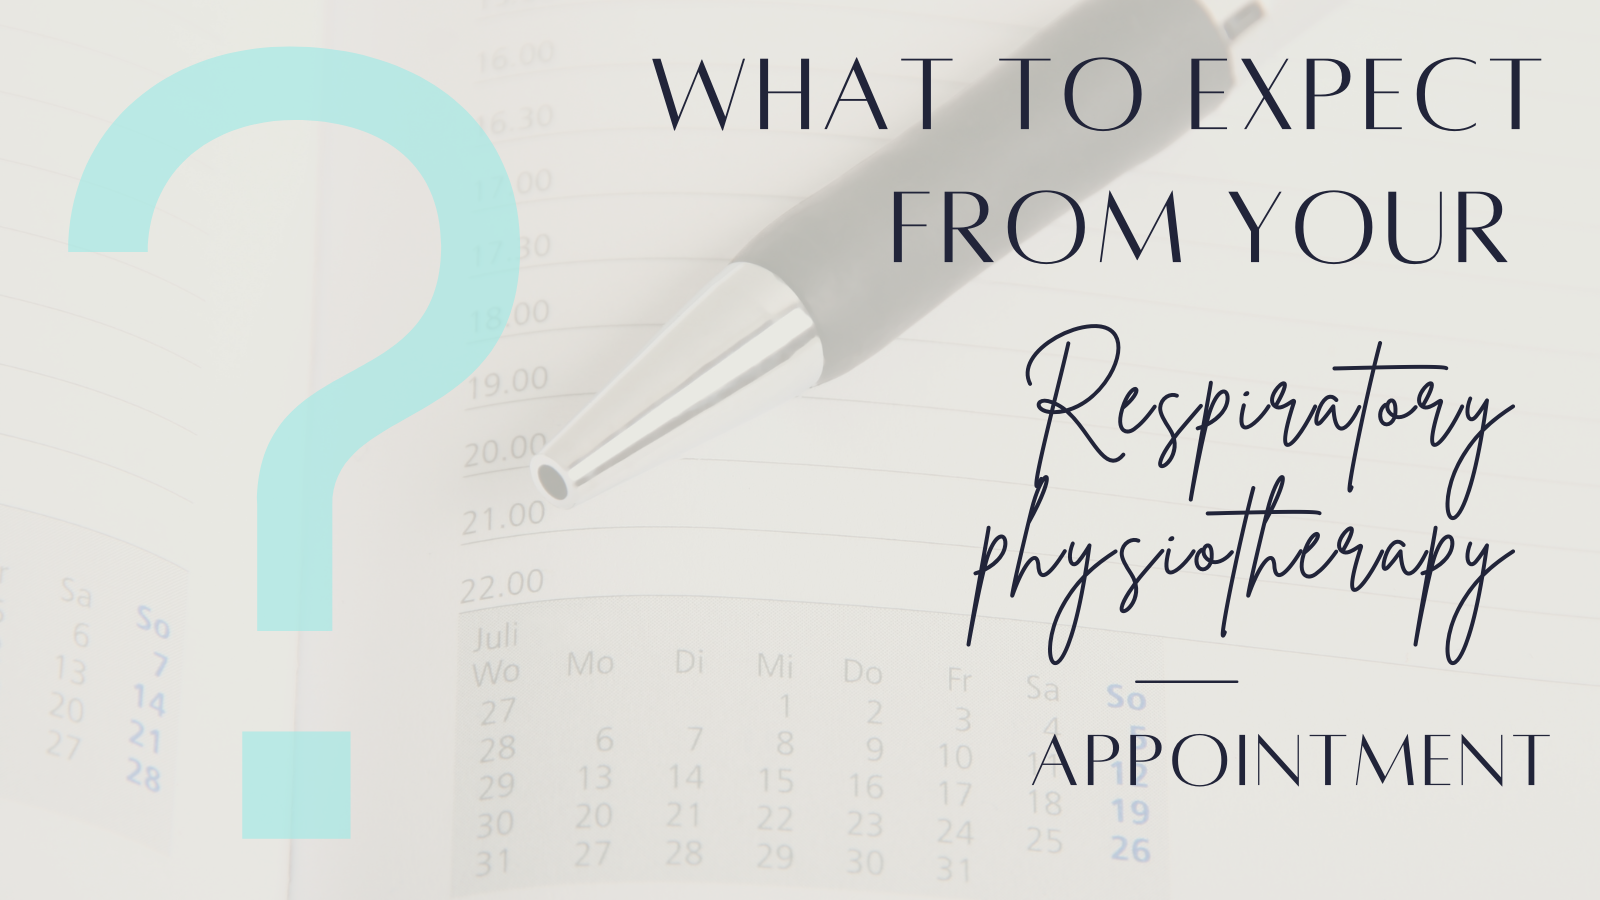 Respiratory physiotherapy appointment